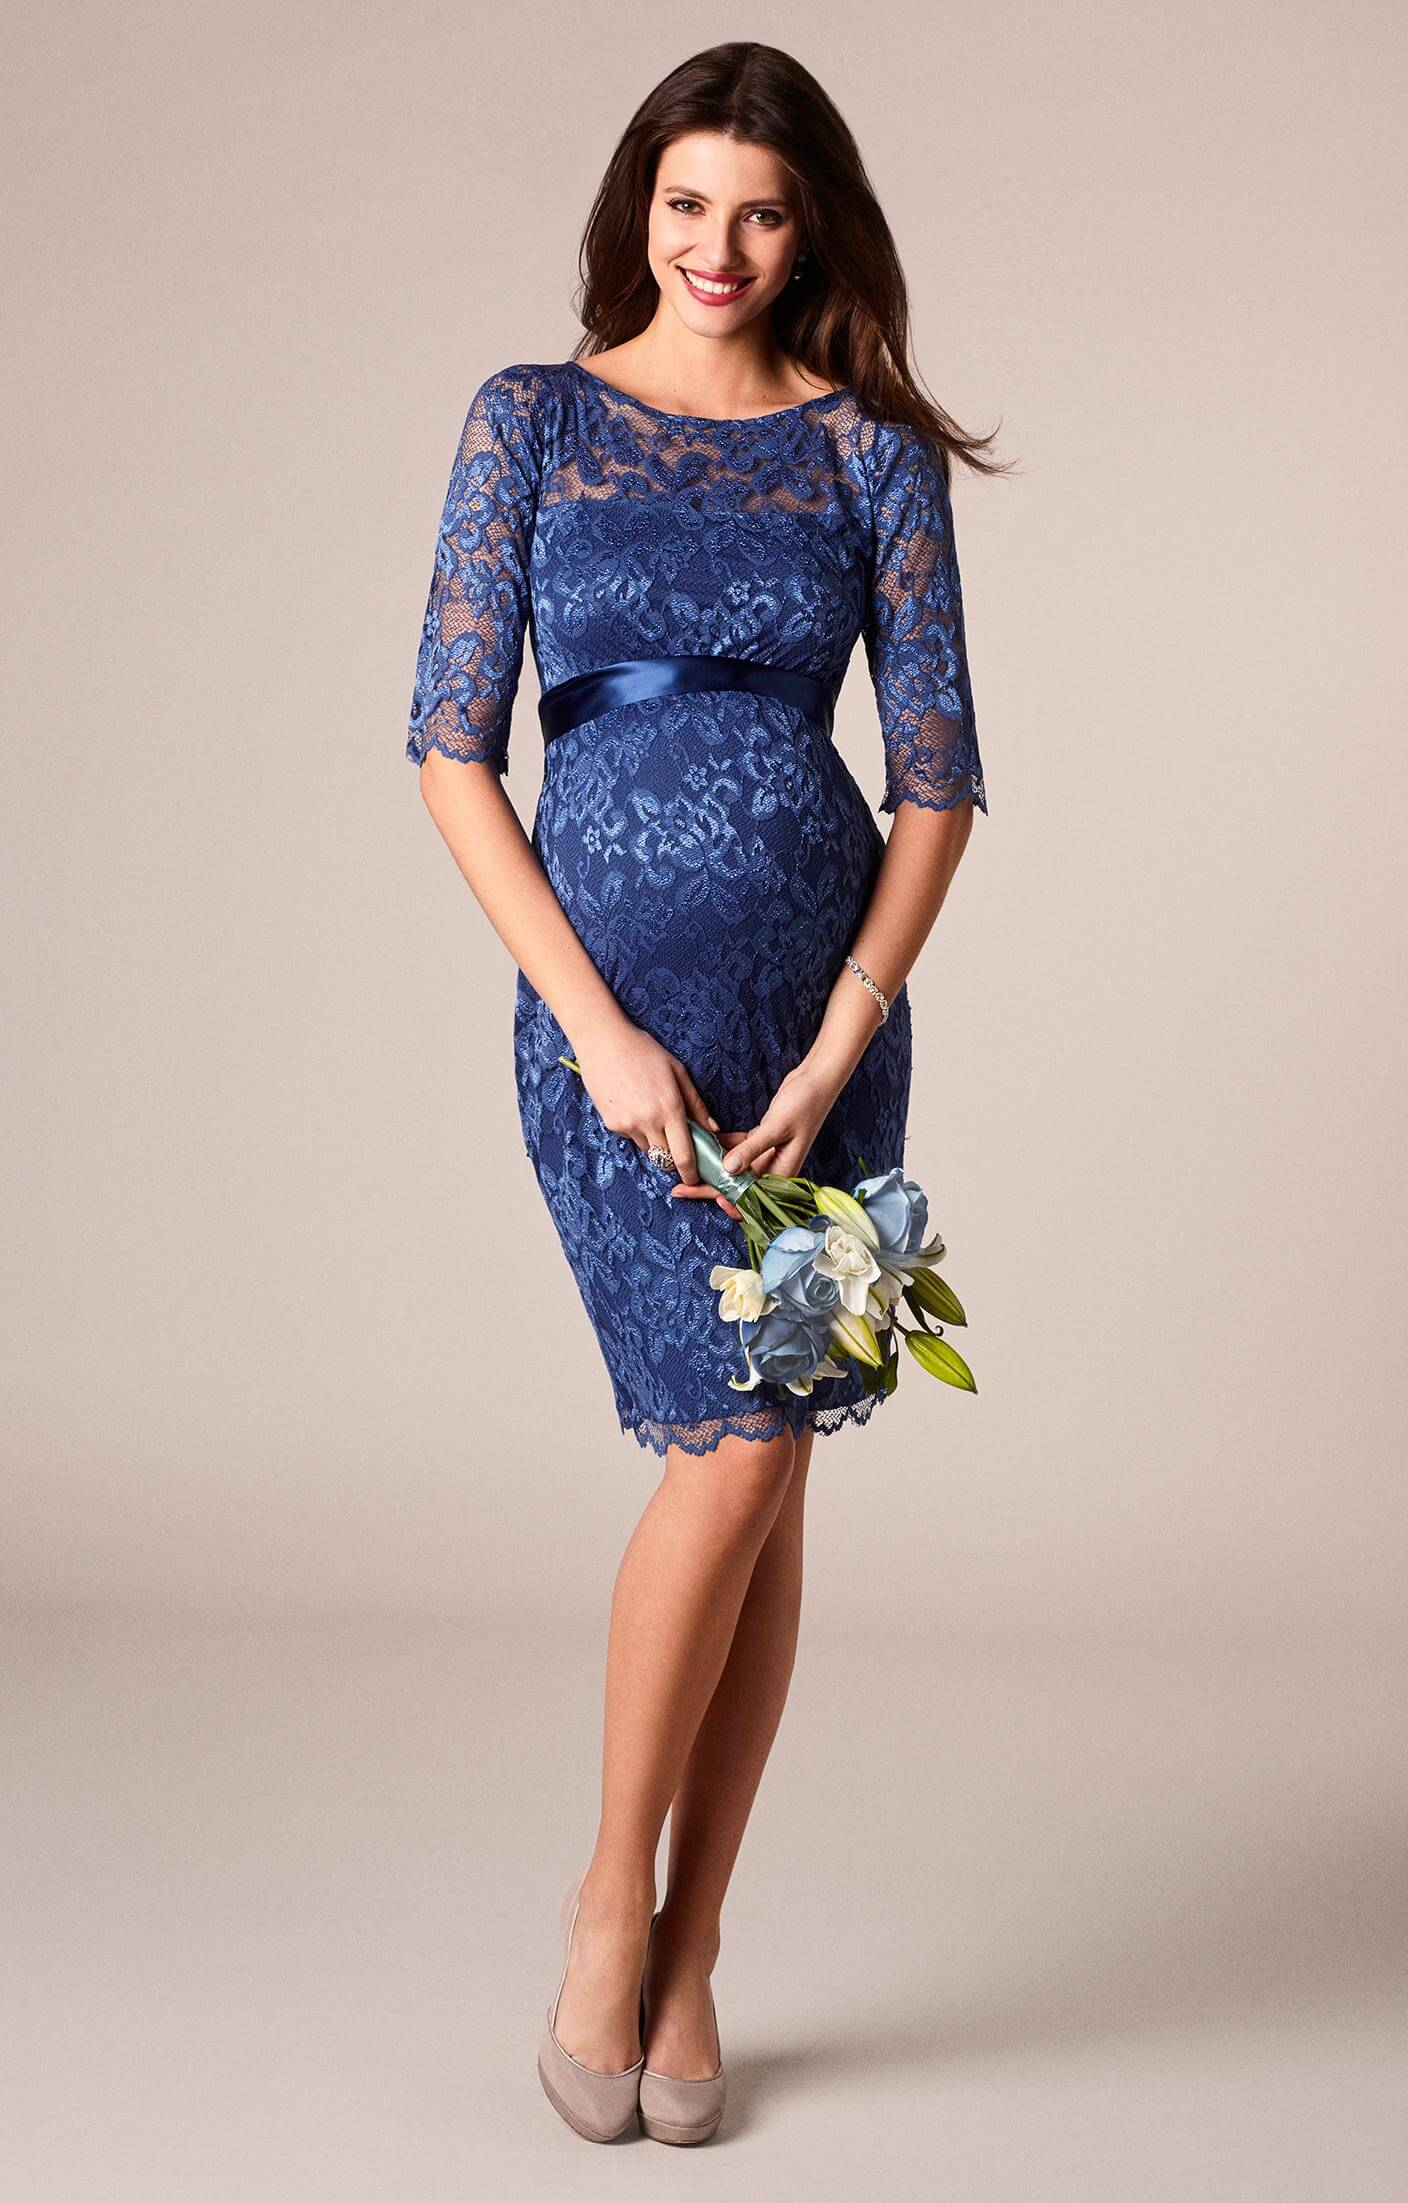 Evening Wear Maternity Dresses